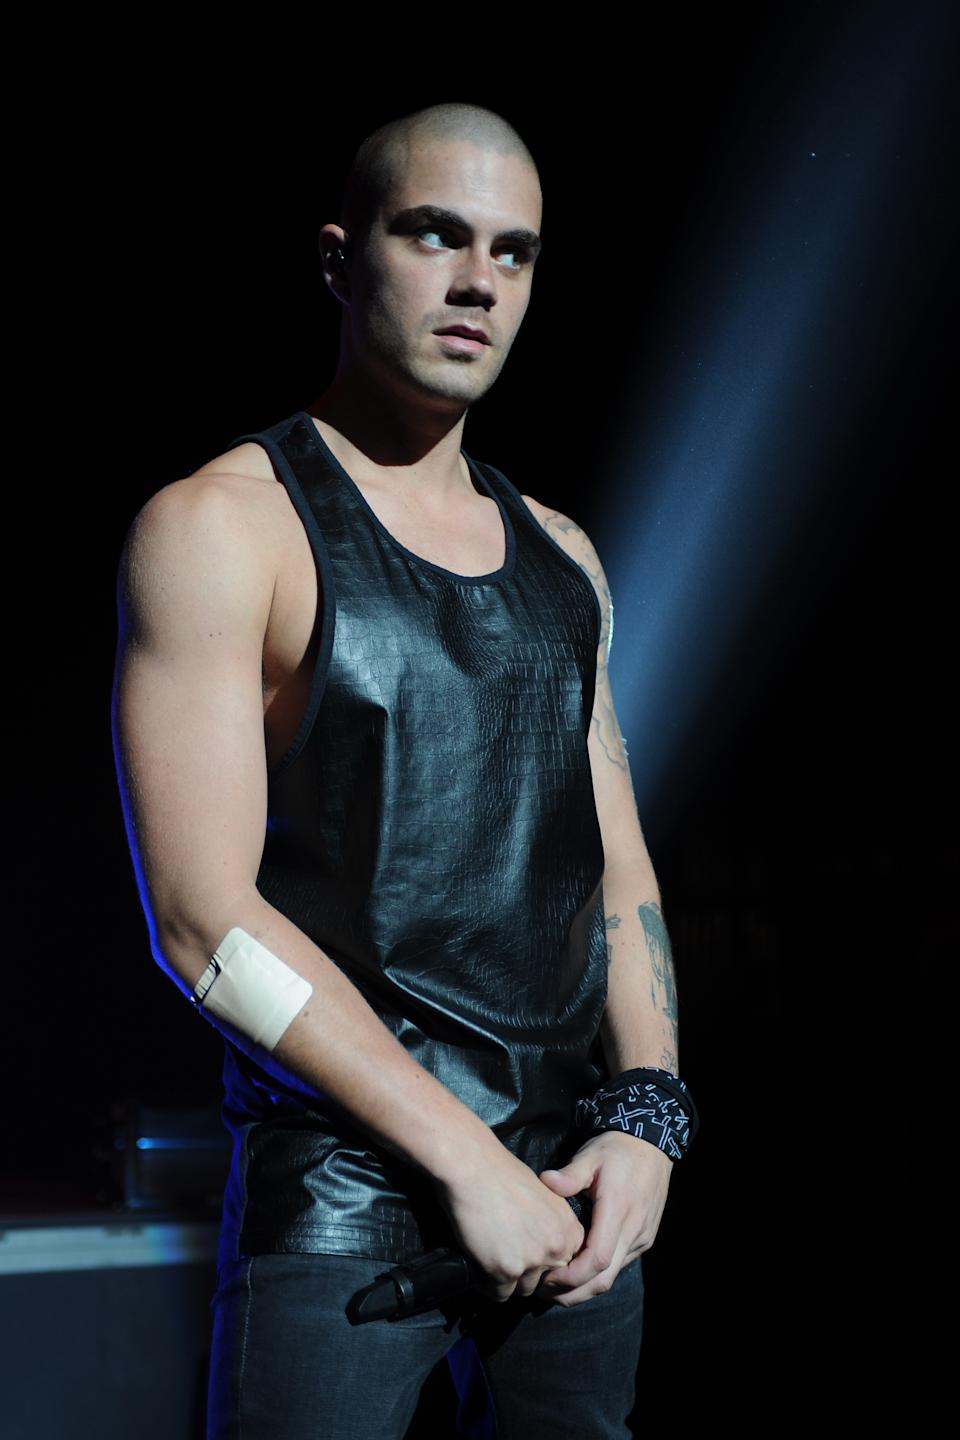 Max George of The Wanted performs at Fillmore Miami Beach on May 9, 2014 in Miami Beach, Florida. (Photo by Larry Marano/Getty Images)